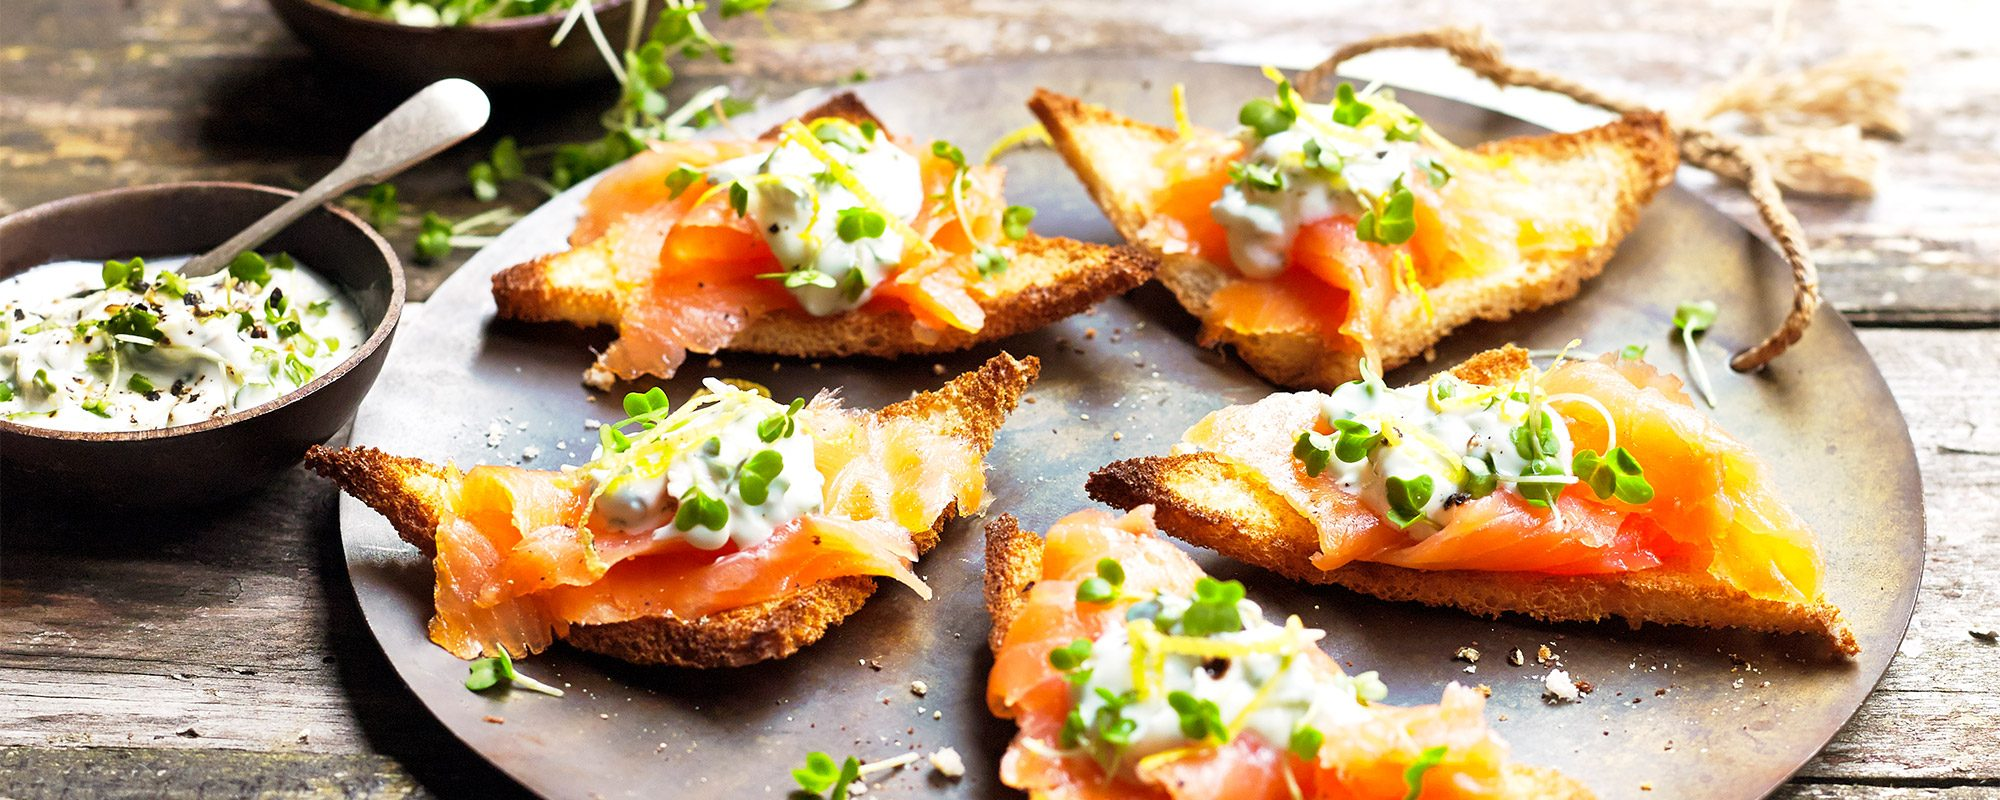 Smoked salmon and salad cress melba toasts